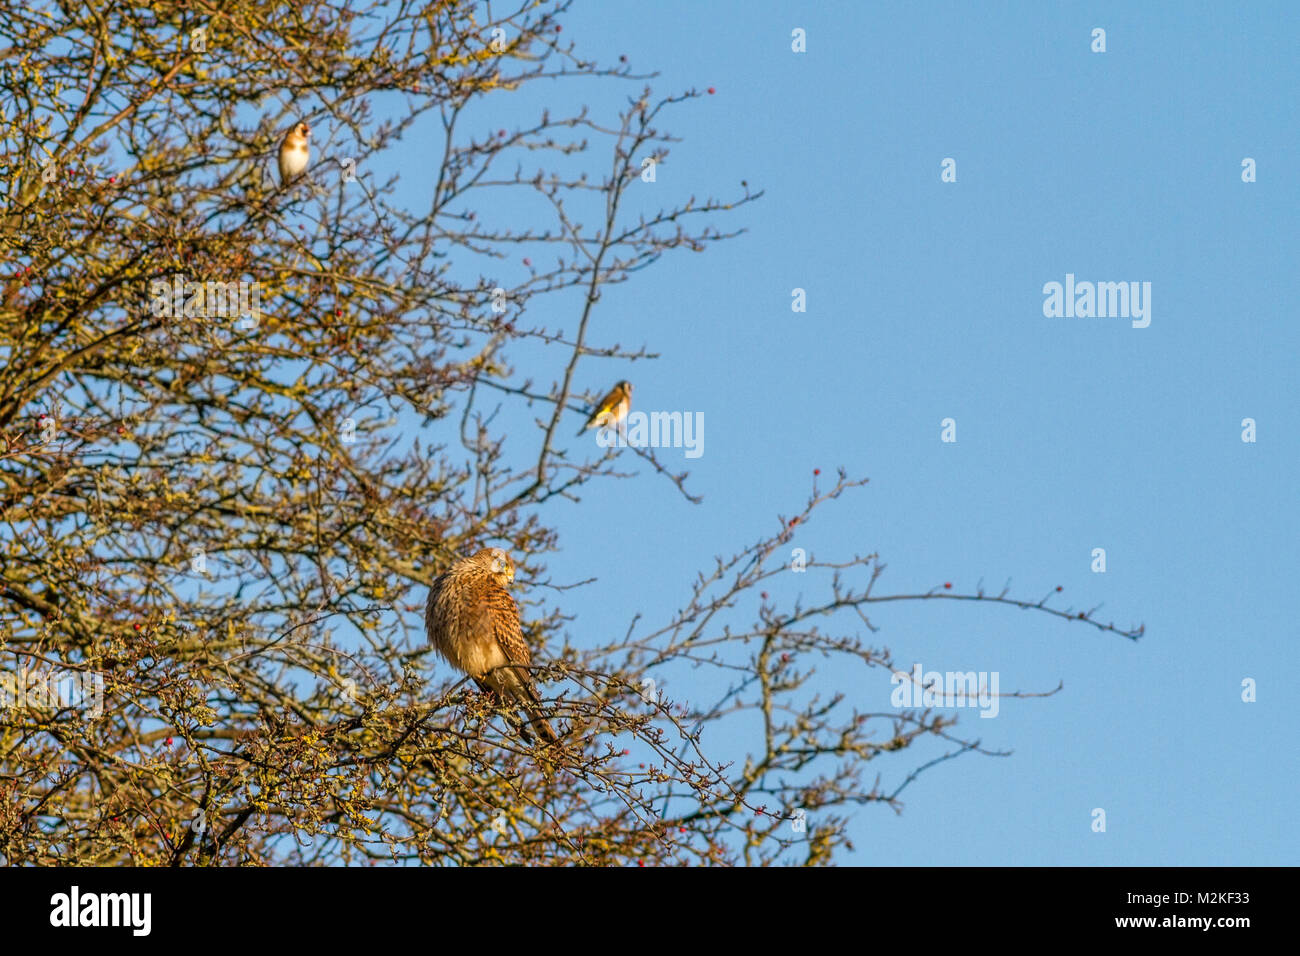 UK wildlife: female kestrel (Falco tinnunculus) sharing a tree with two goldfinches - Stock Image